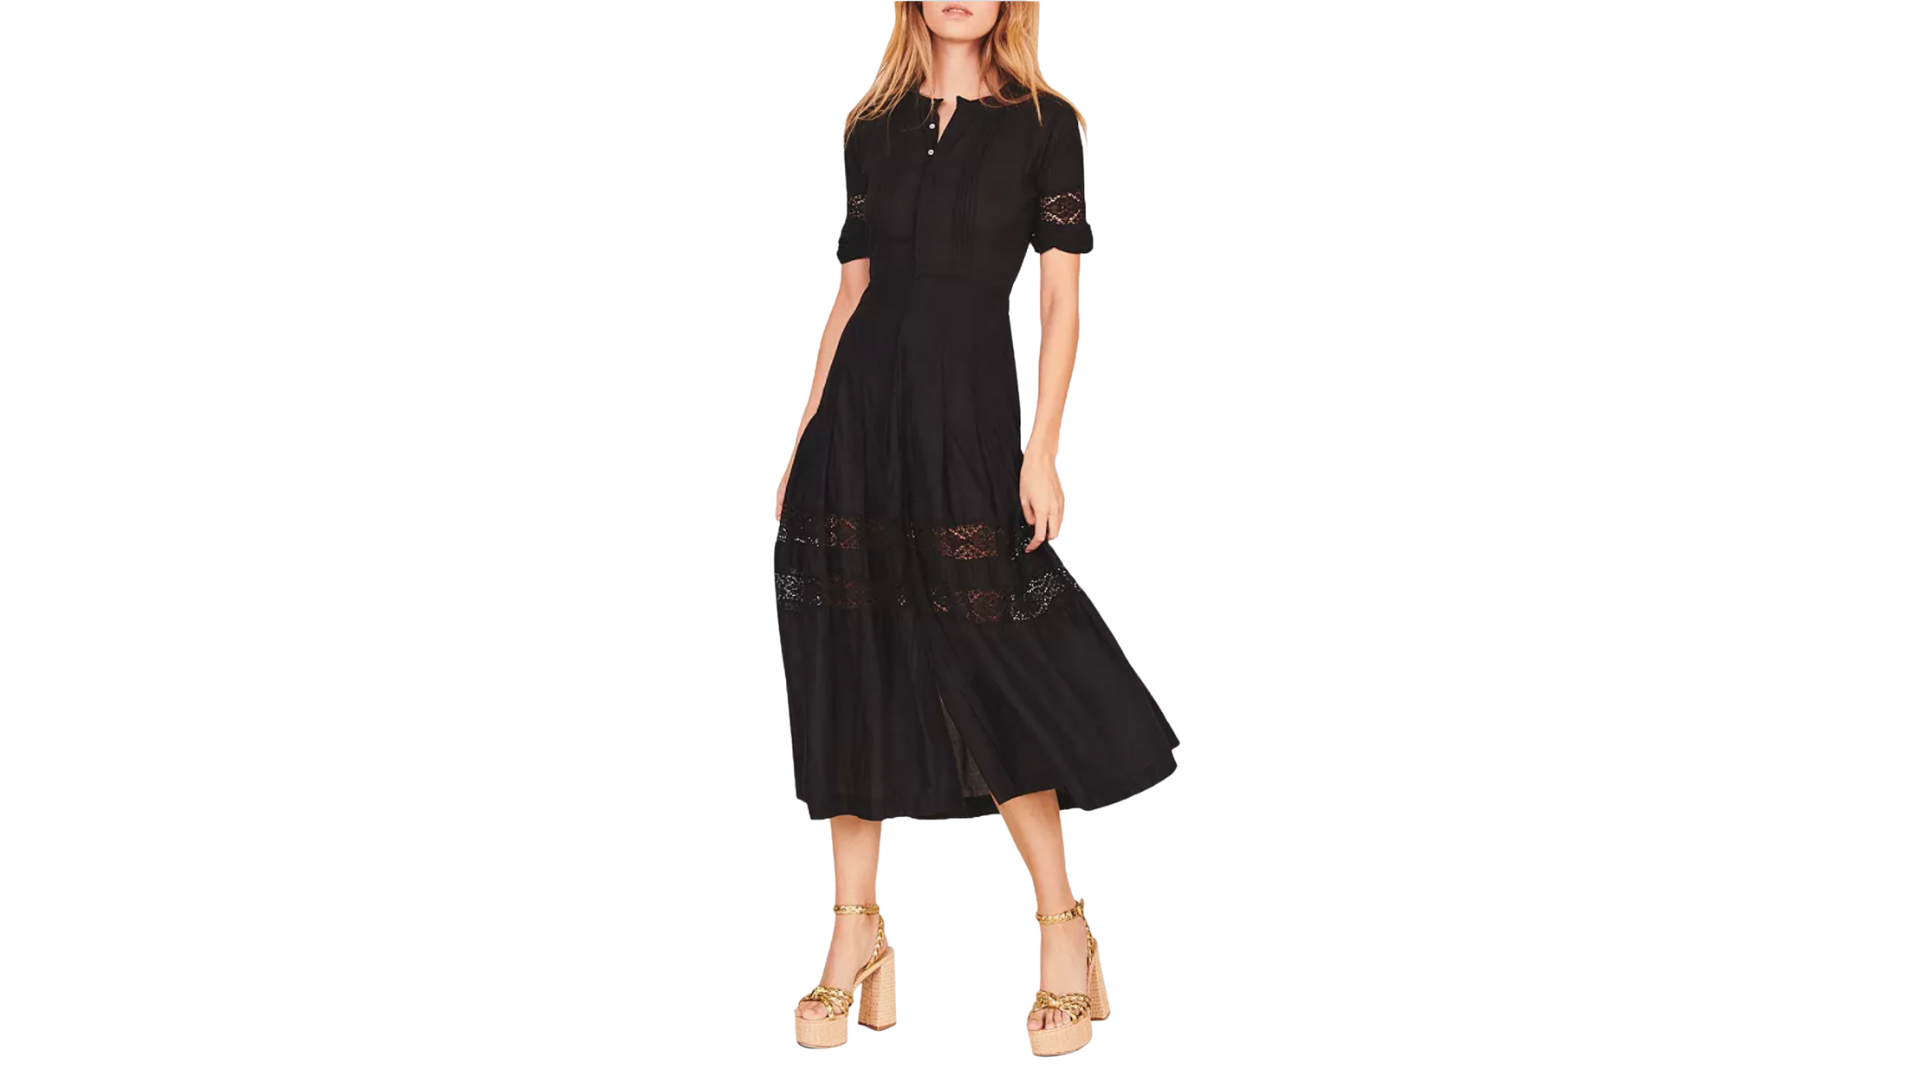 Bloomingdale's best clothing stores for women over 50